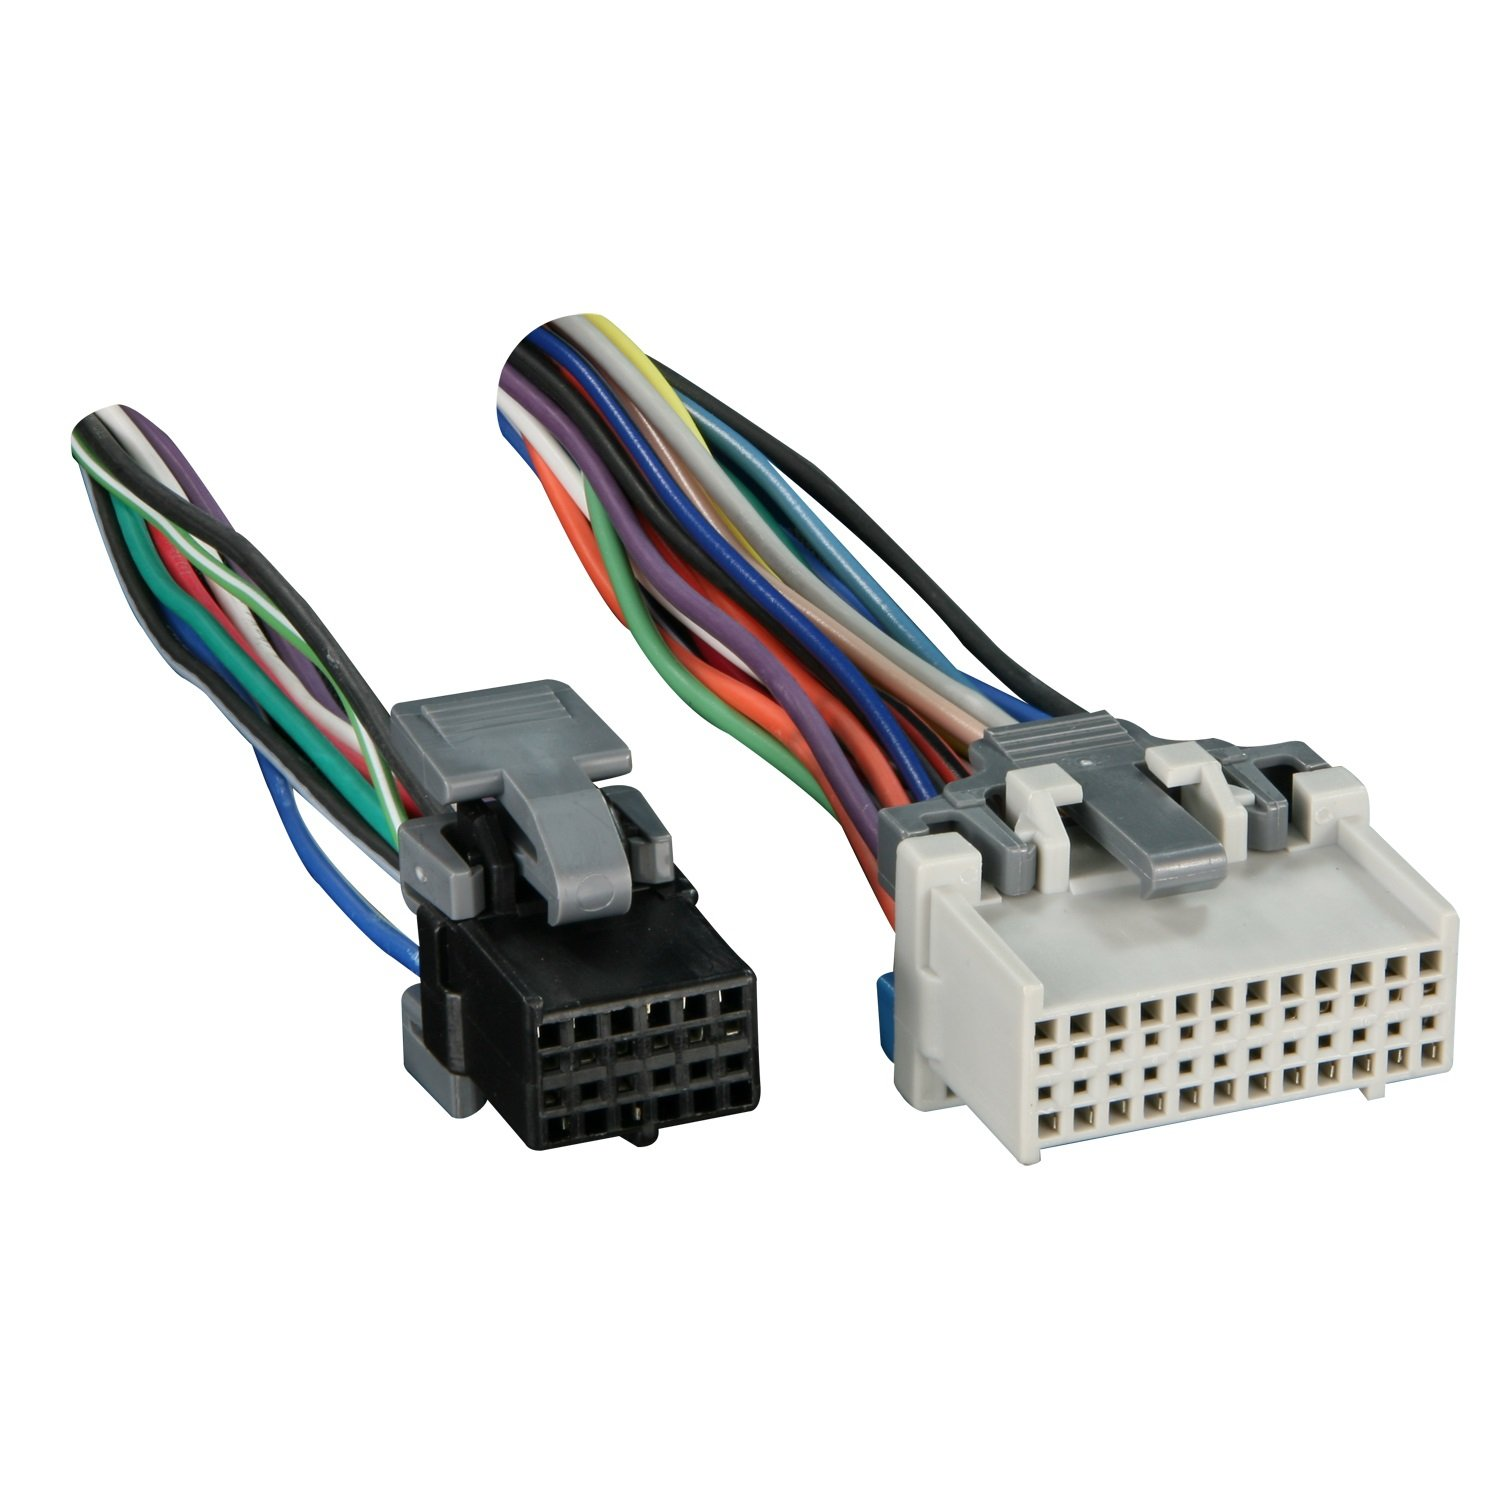 711log4bdML._SL1500_ amazon com metra turbowires 71 2003 1 wiring harness car electronics  at gsmx.co